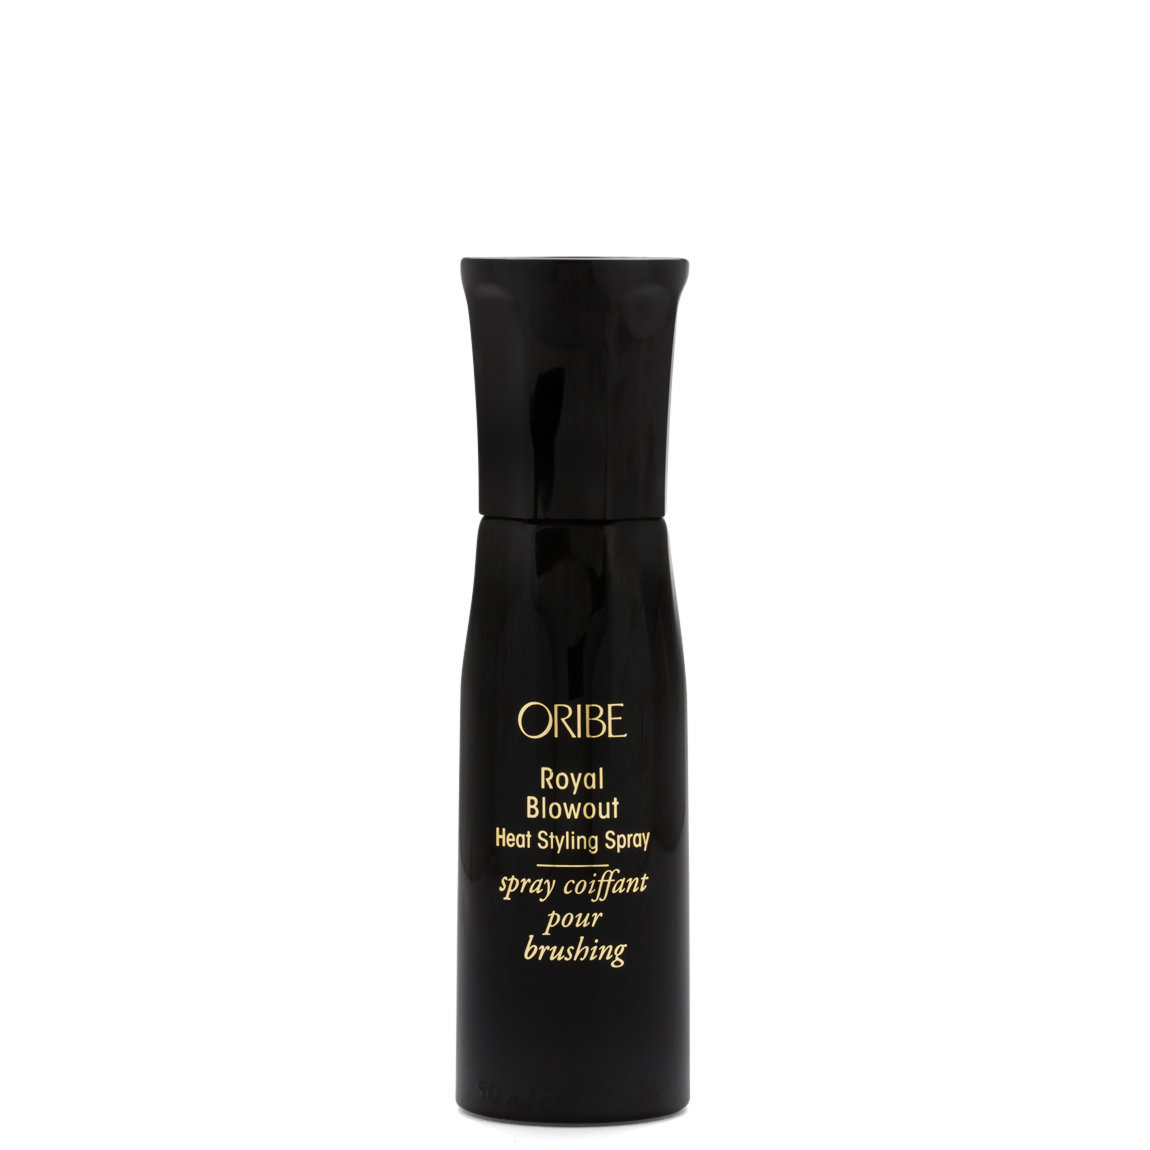 Oribe Royal Blowout Heat Styling Spray 1.7 oz product smear.